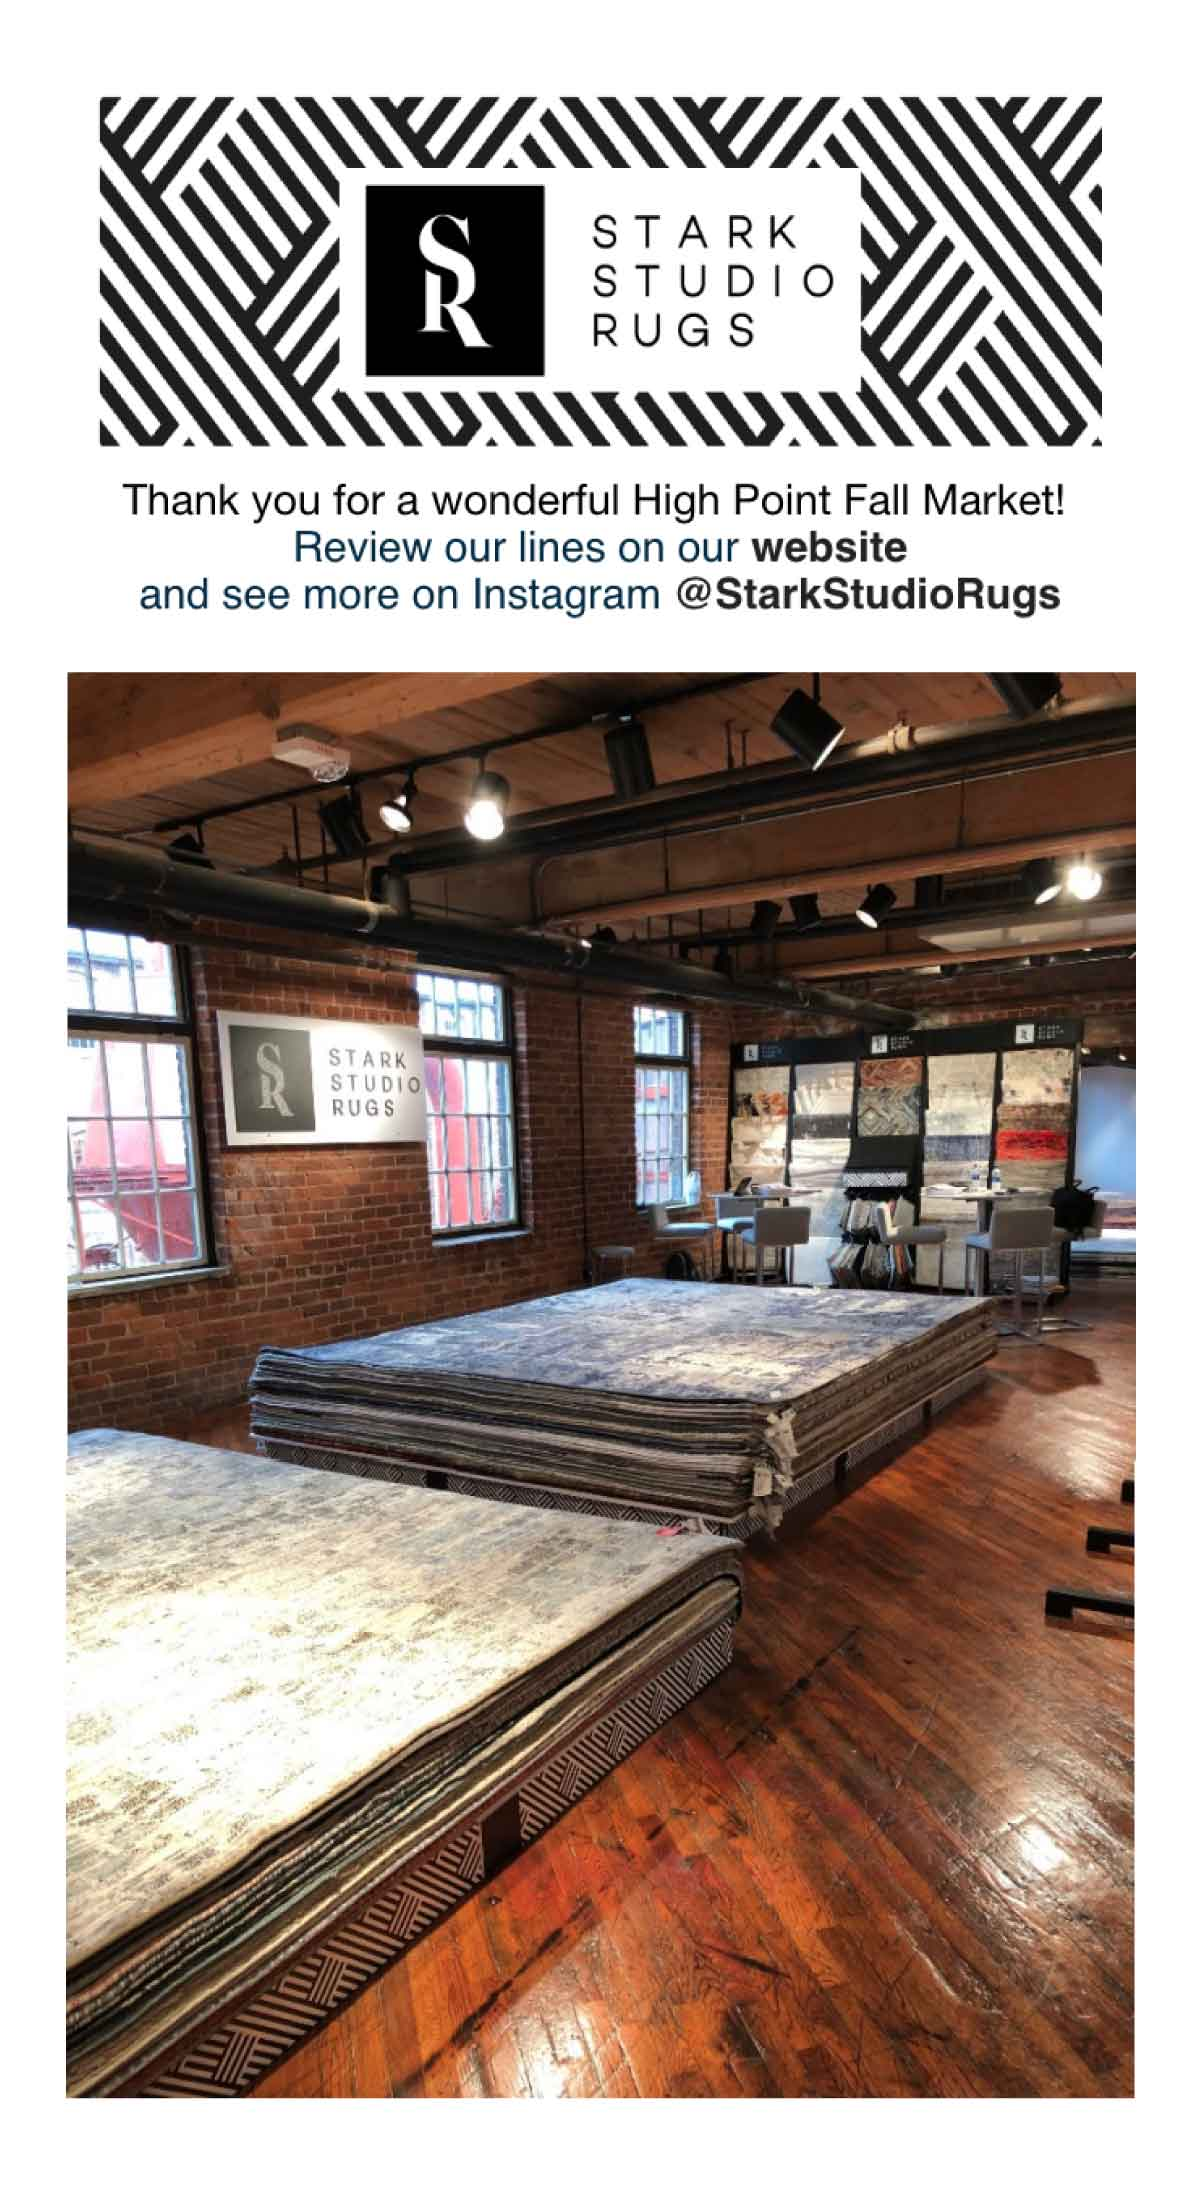 Thank you from Stark Studio Rugs